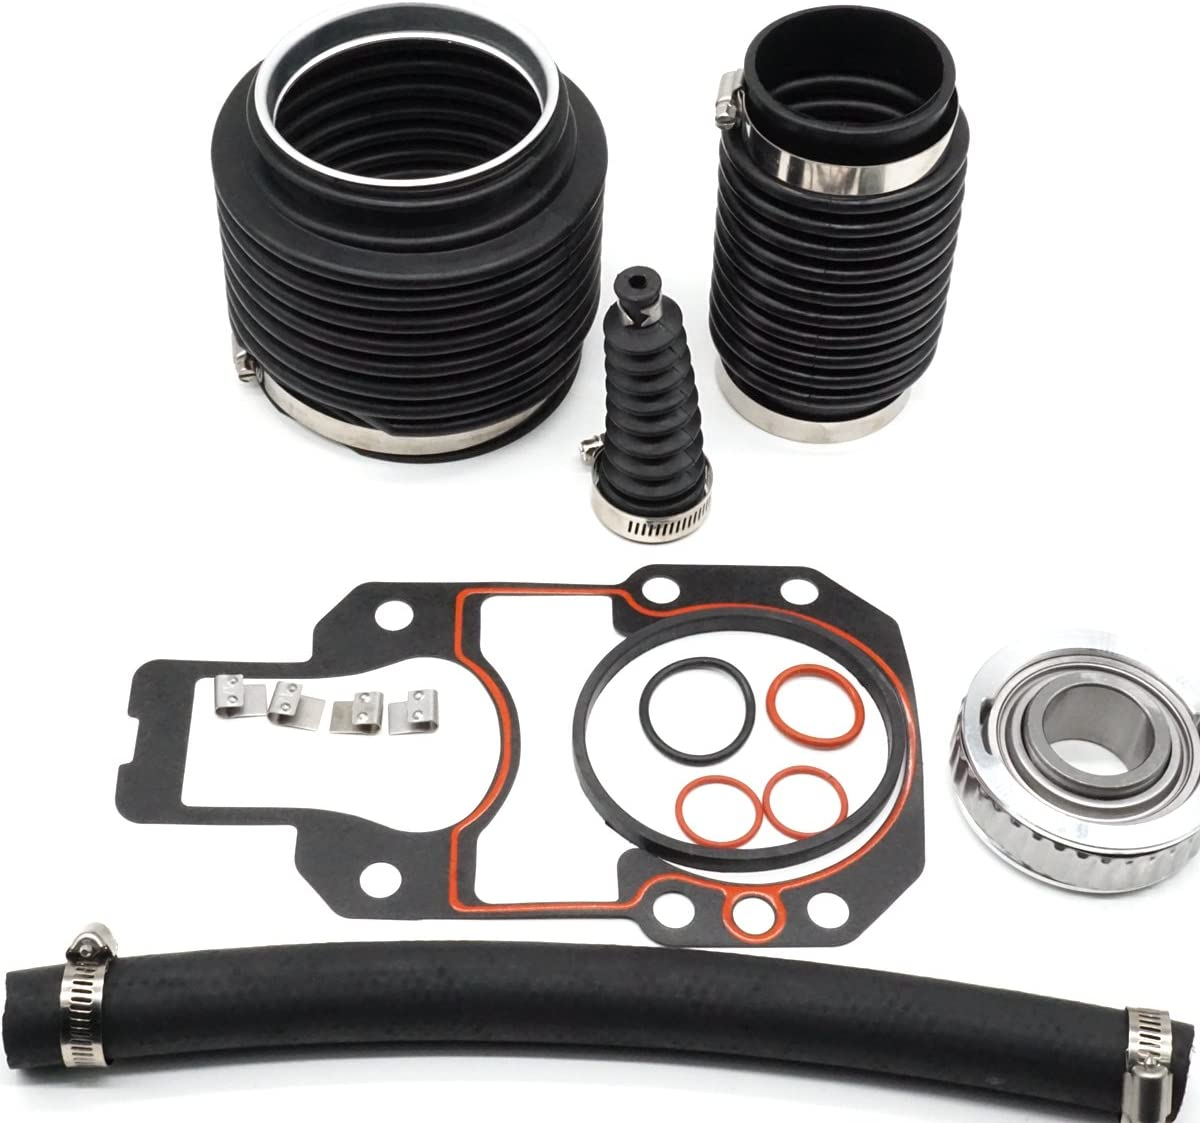 UANOFCN Stern Drive Transom Seal Repair Kit 803099T1 - for MerCruiser Alpha One, Gen II Stern Drives with Exhaust Bellows